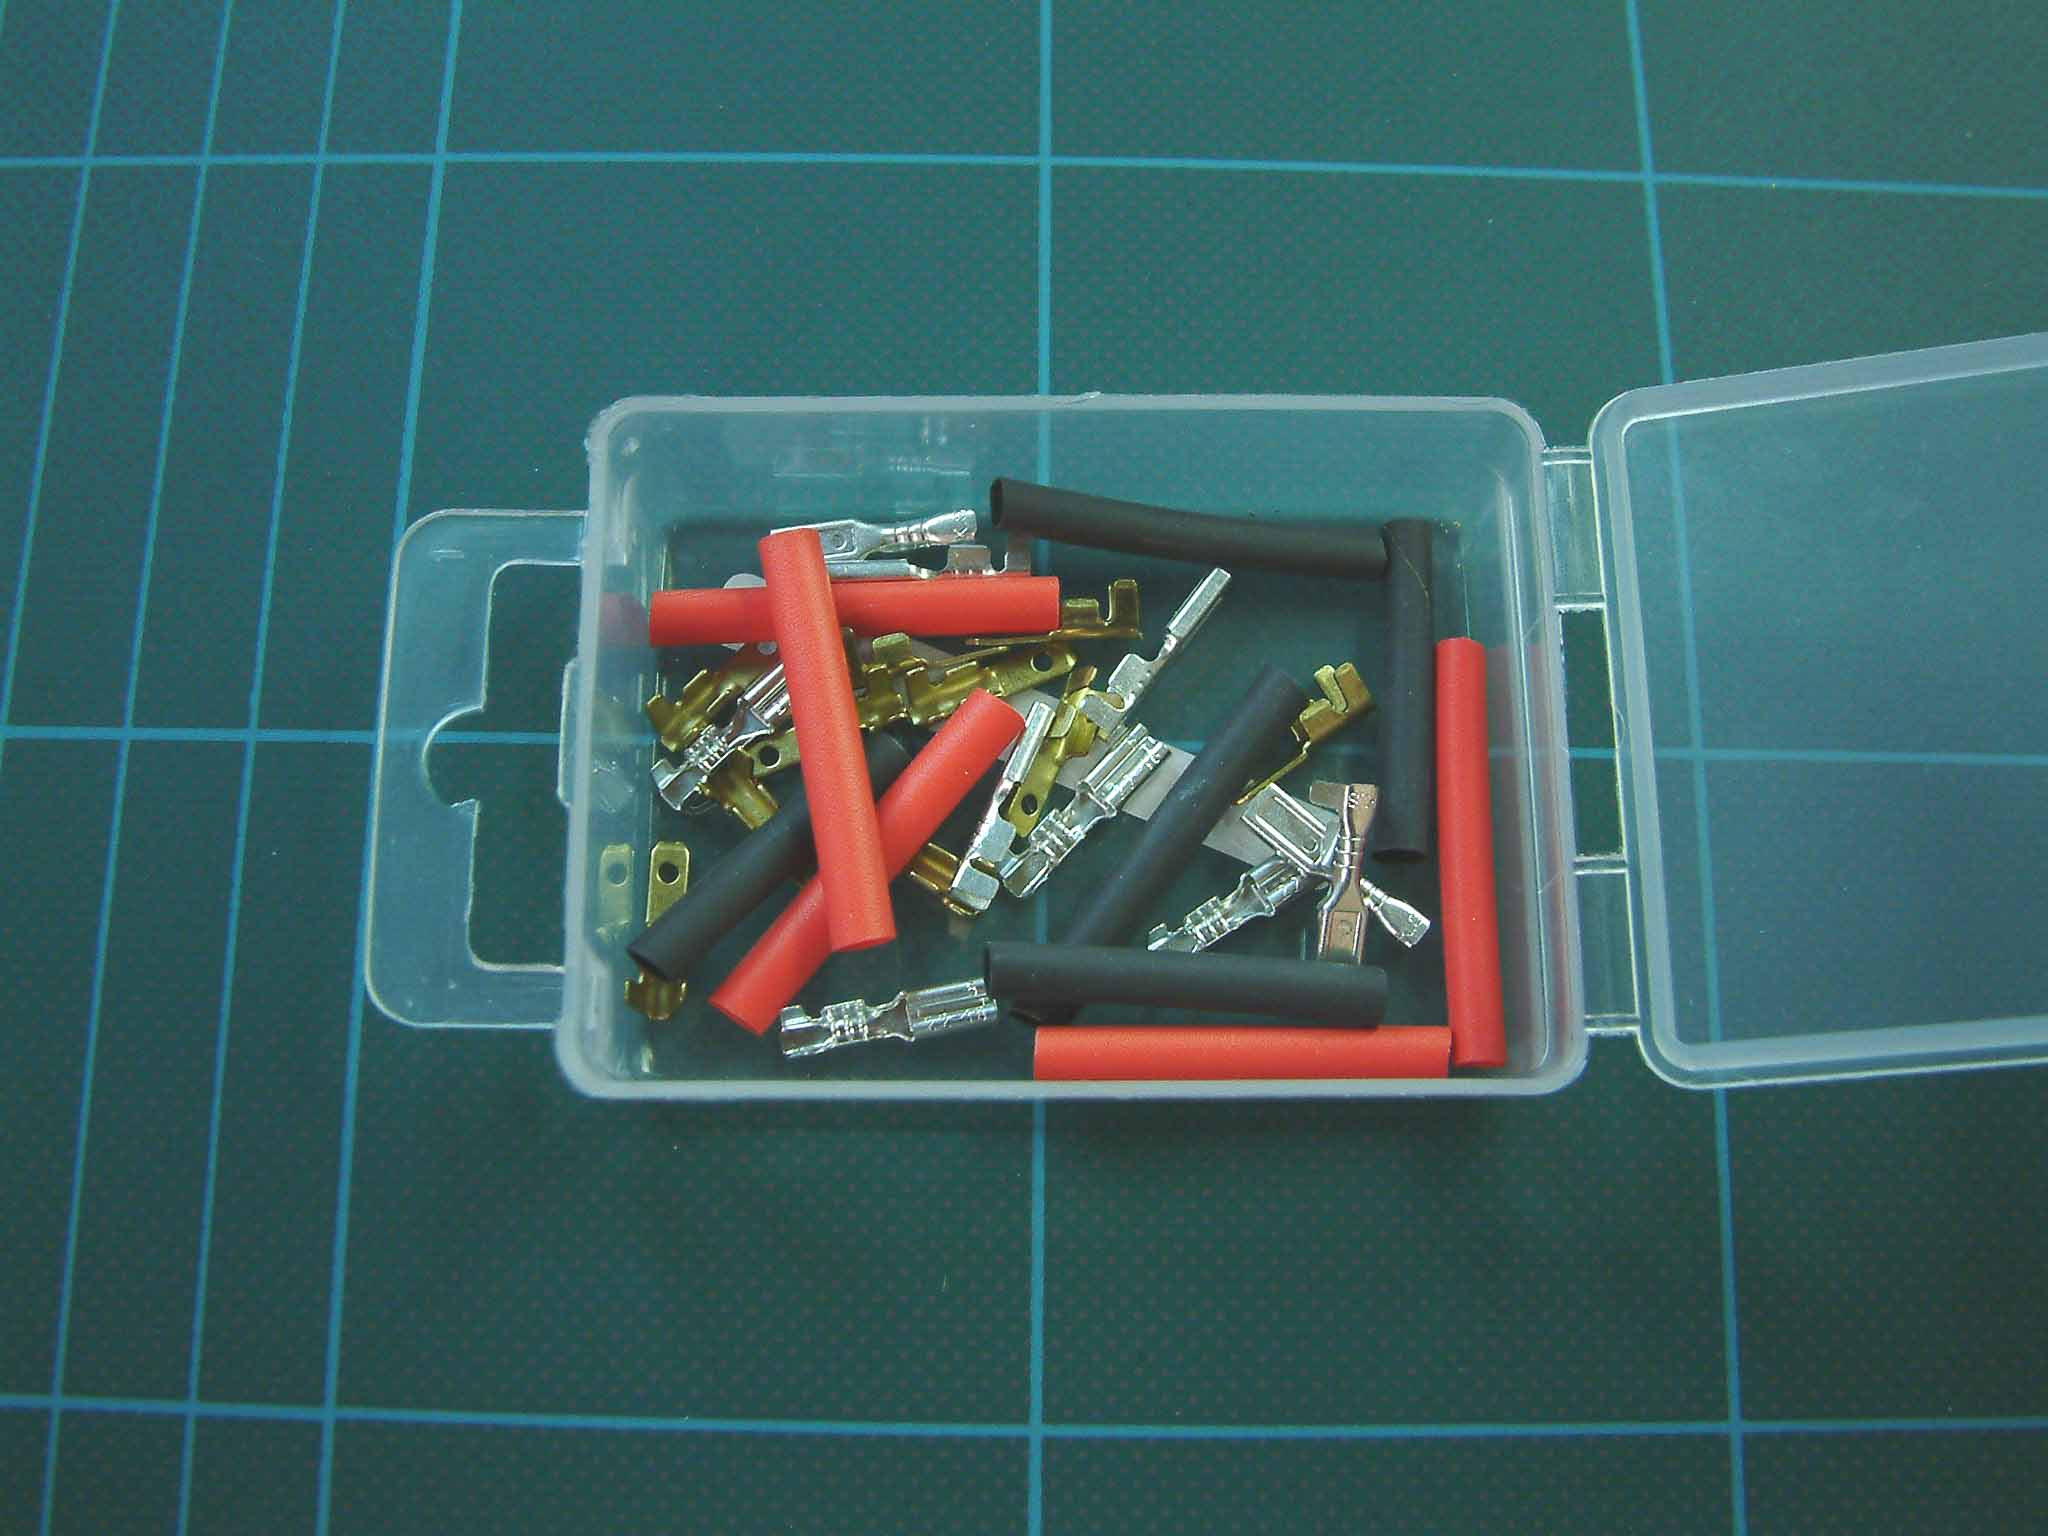 Model Railway Shop - Electronics - Wire Connectors and Battery Packs